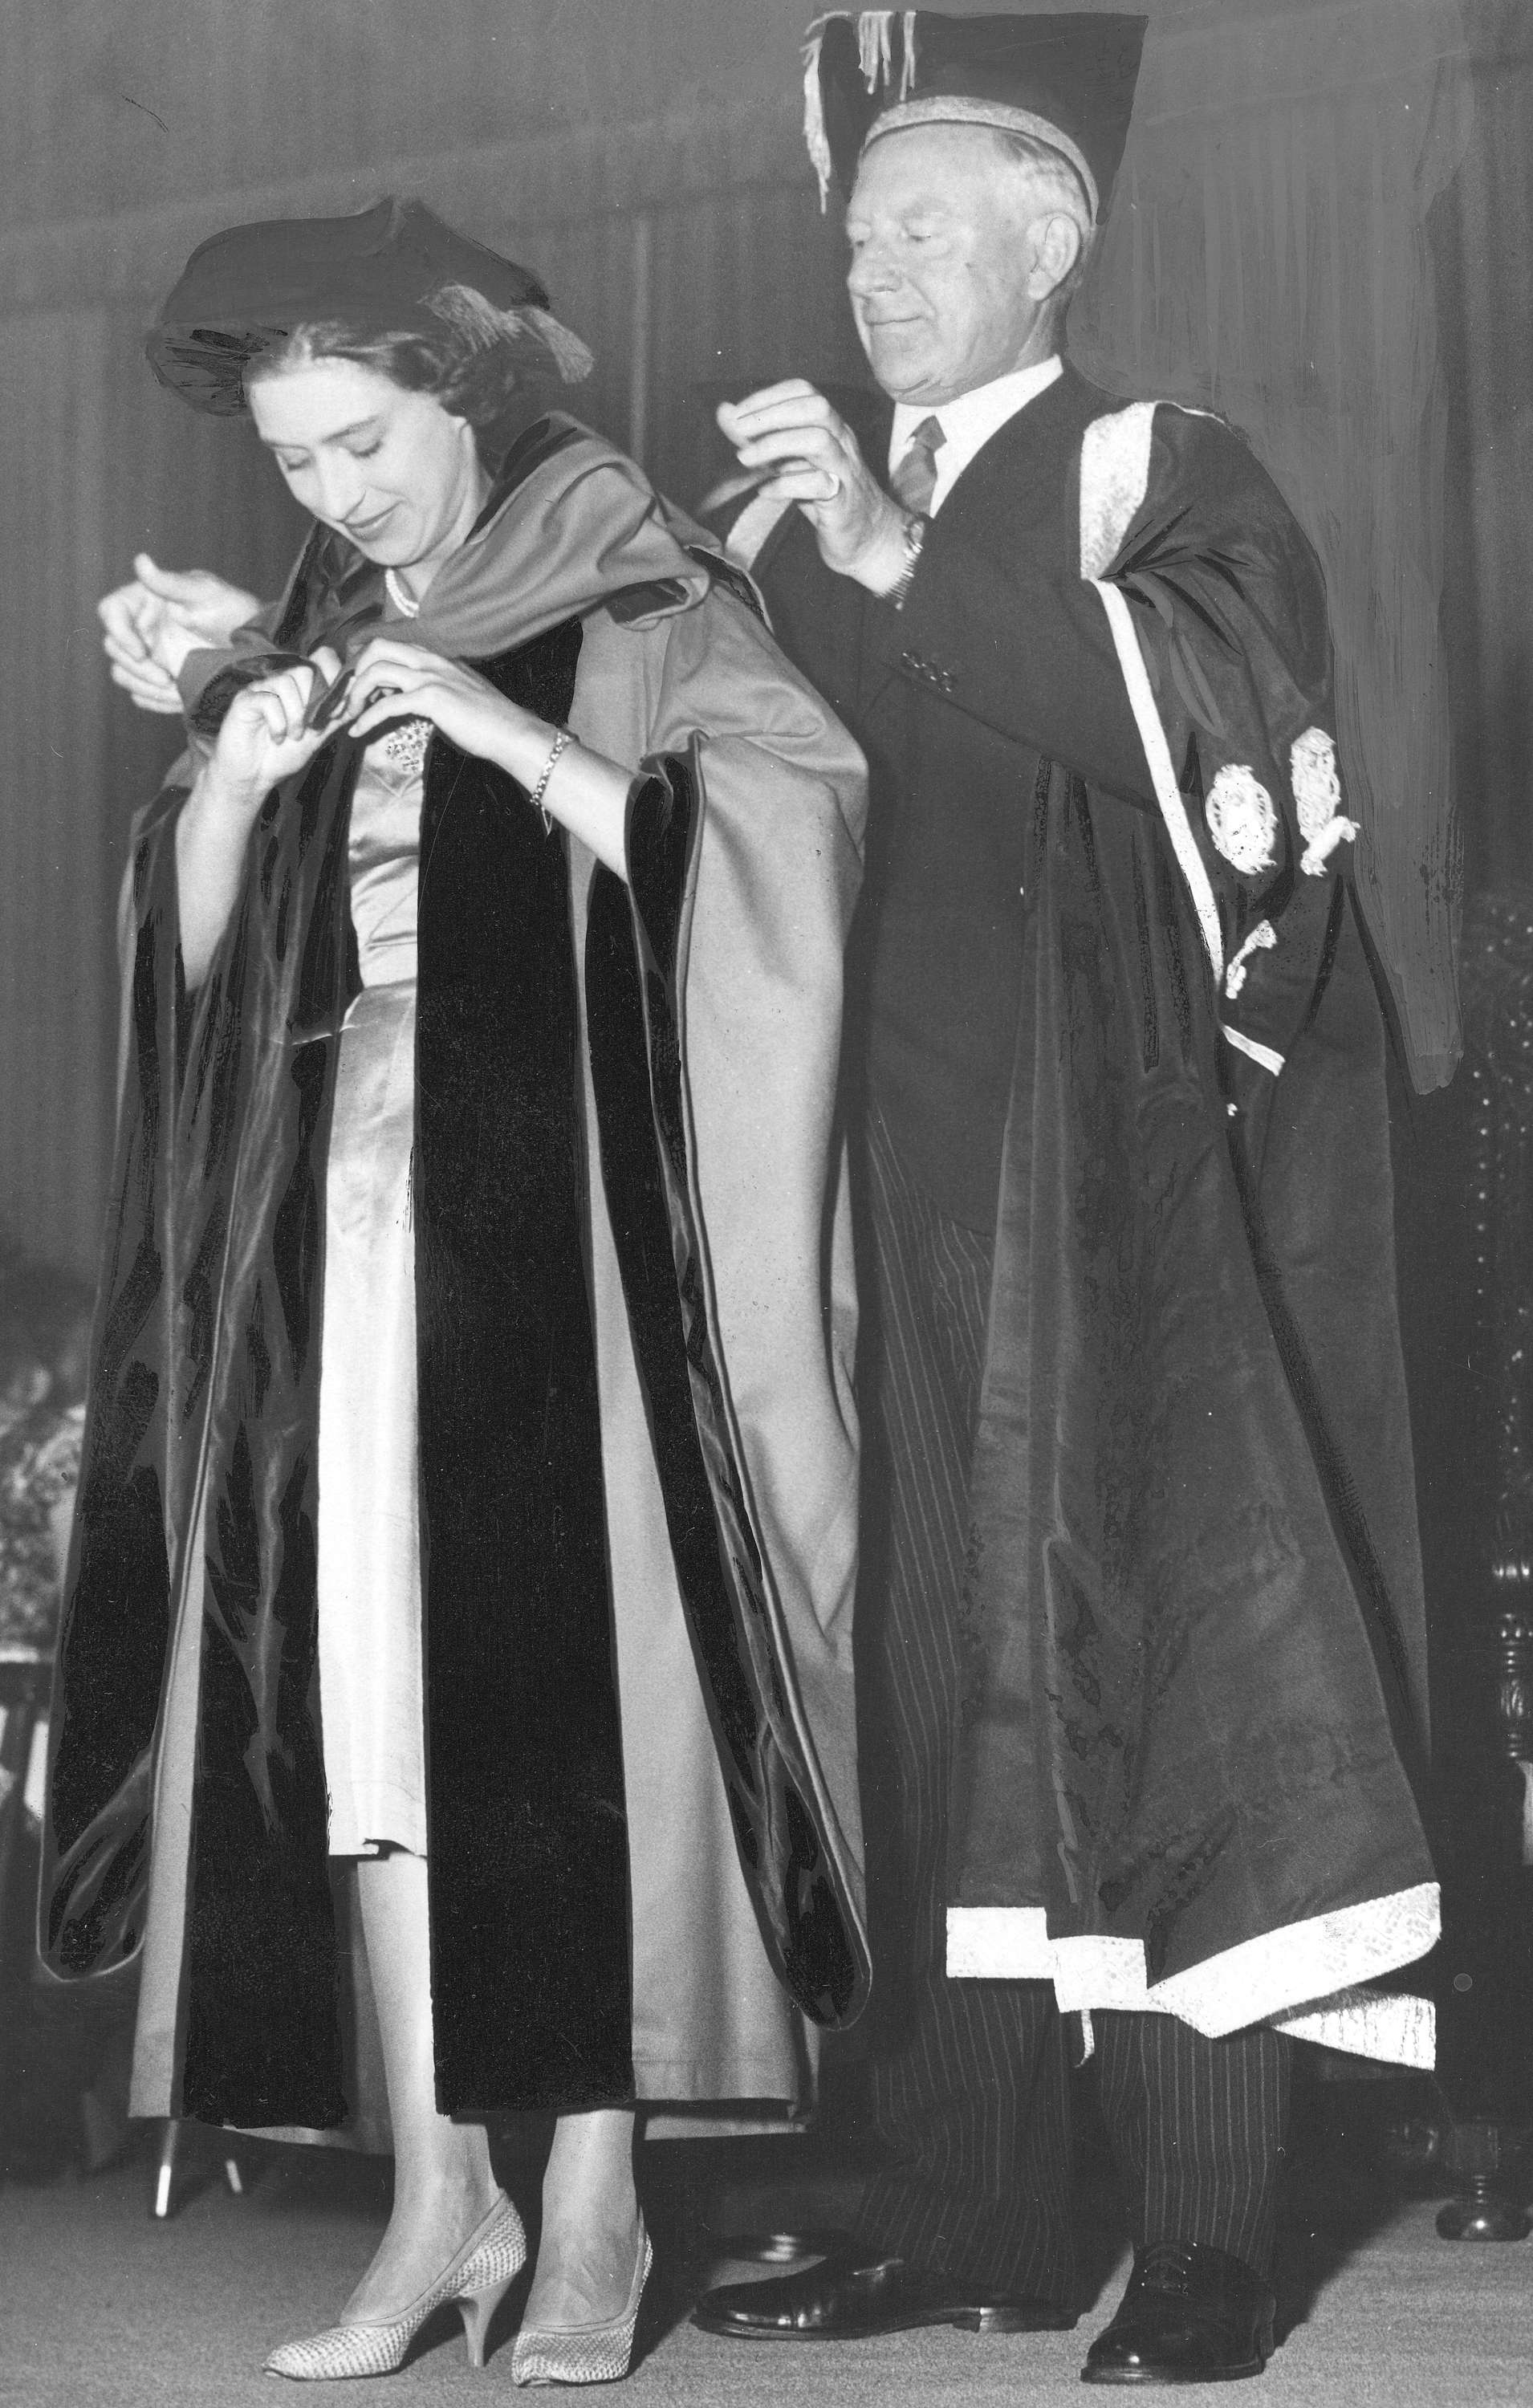 Princess Margaret receiving an honorary Doctorate of Laws from President N.A.M. MacKenzie at UBC in 1958 (Public domain)